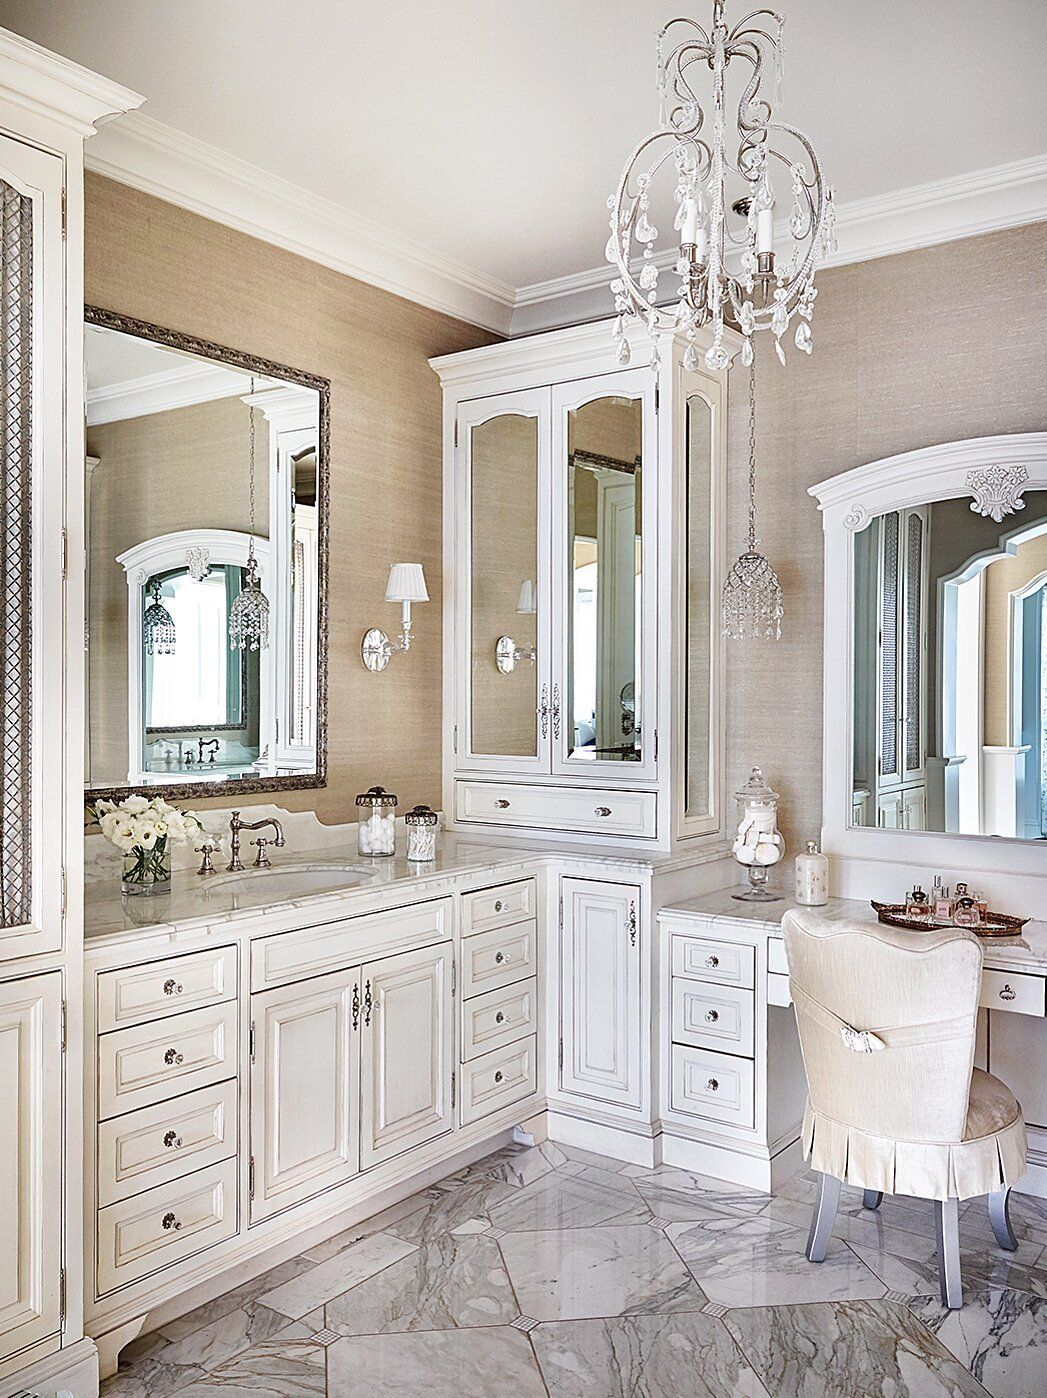 Design Your Own Bathroom Layout Planning A Bathroom Layout In 2020 Bathroom Layout Vanity Design Bathrooms Remodel